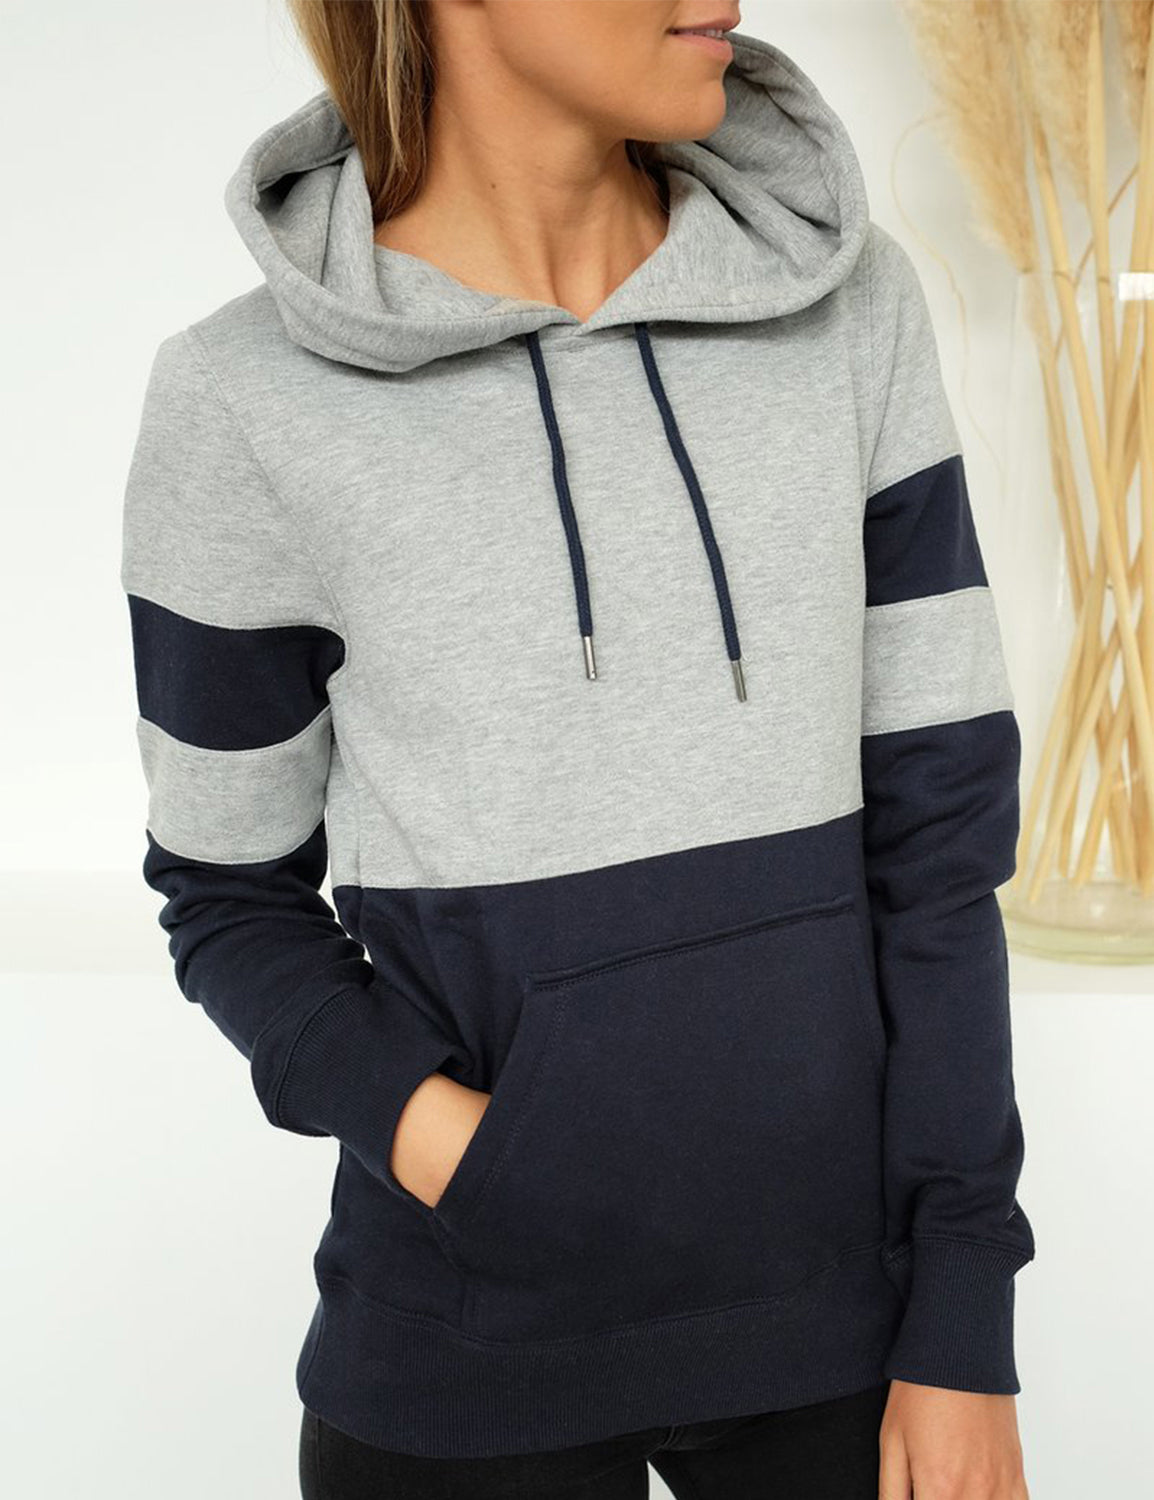 Blooming Jelly_Front Pocket Contrast Color Drawstring Hoodie_Navy Patchwork_302013_30_Autumn&Winter Outdoor Casual_Tops_Hoodie